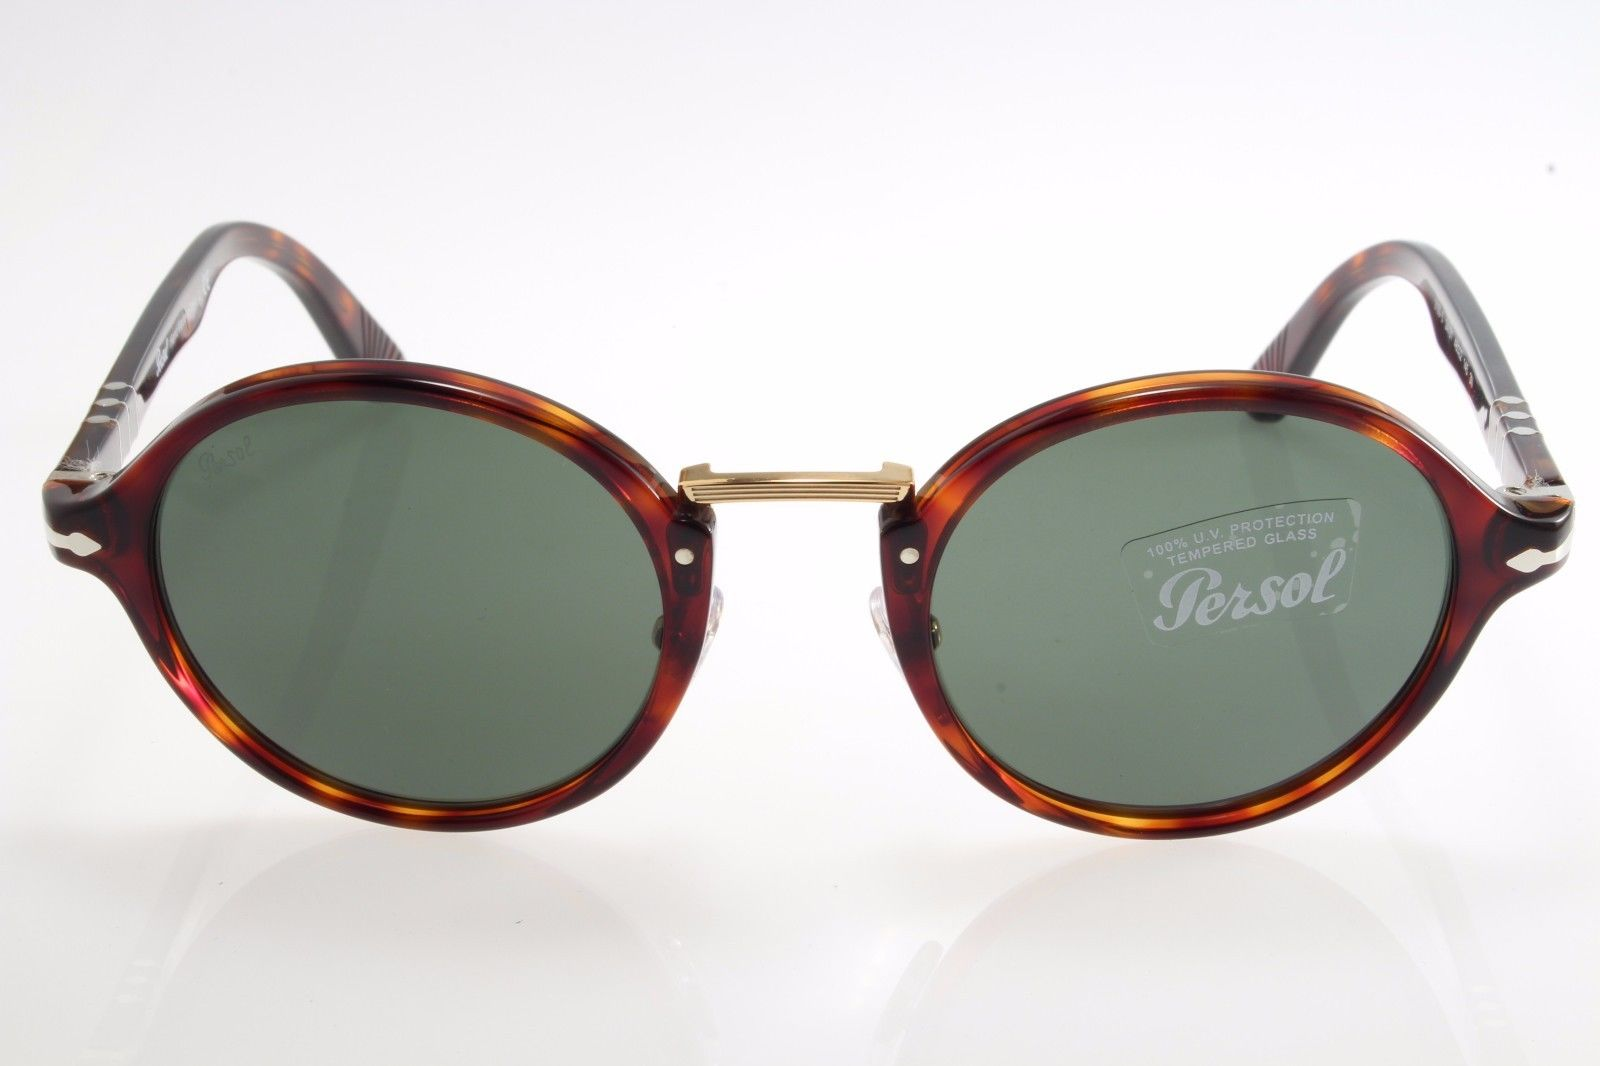 a40f9107c99 New authentic sunglasses Persol Typewriter 3129S 24 31 48 Havana Green  Crystal